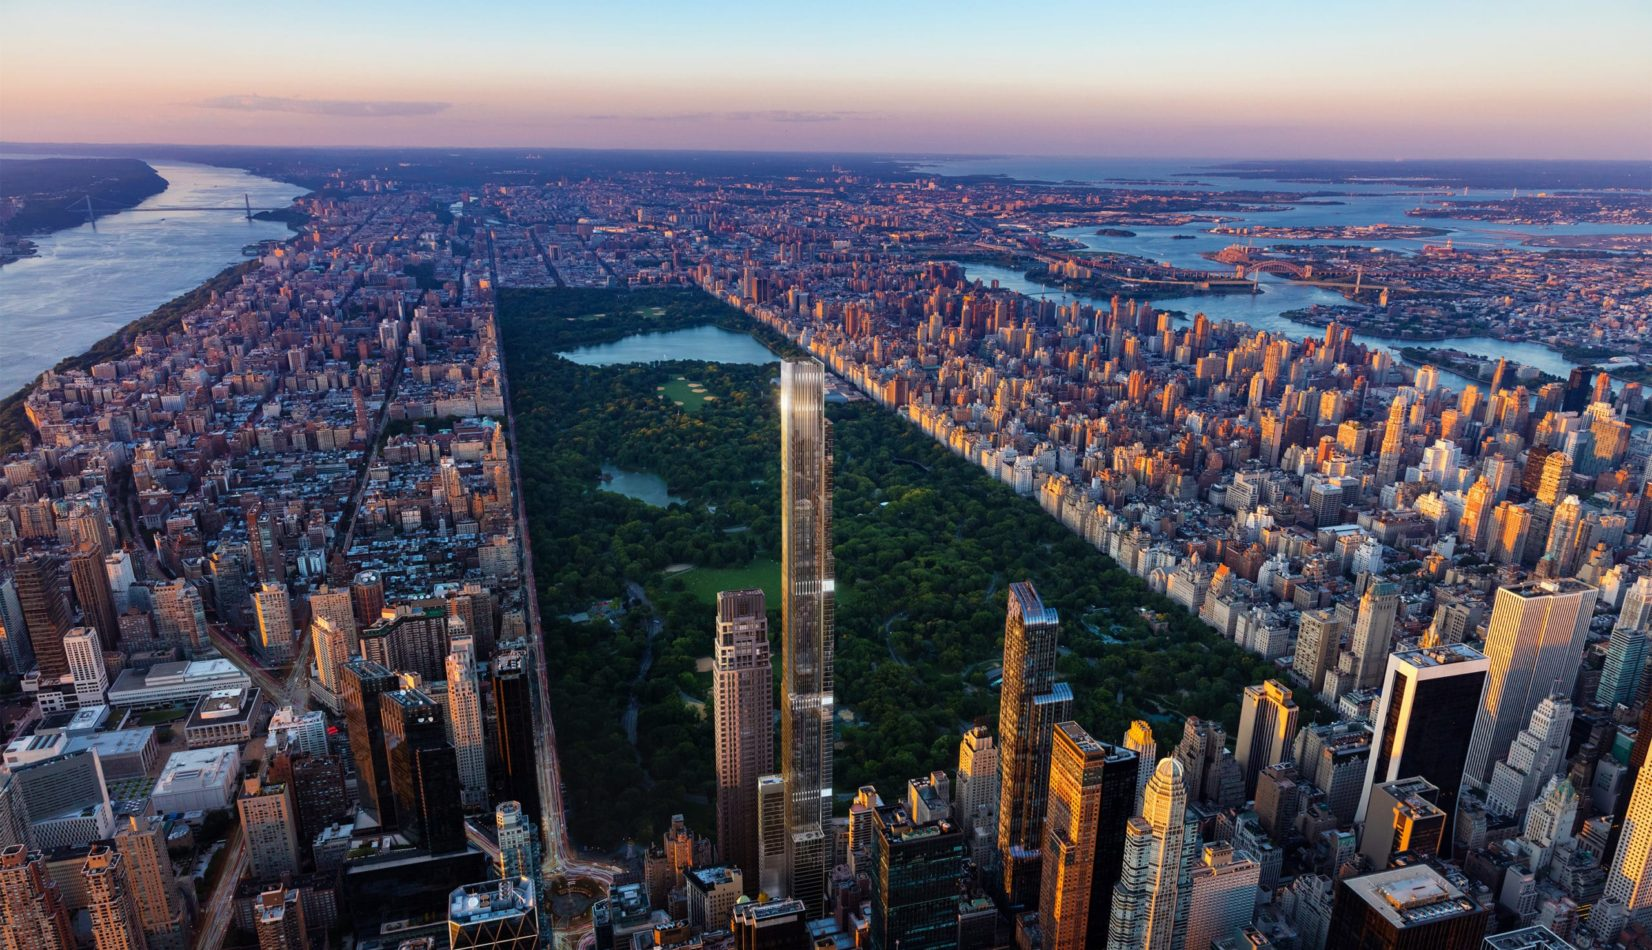 Exterior aerial view of Central Park Tower condominiums with New York City Surrounding central park.